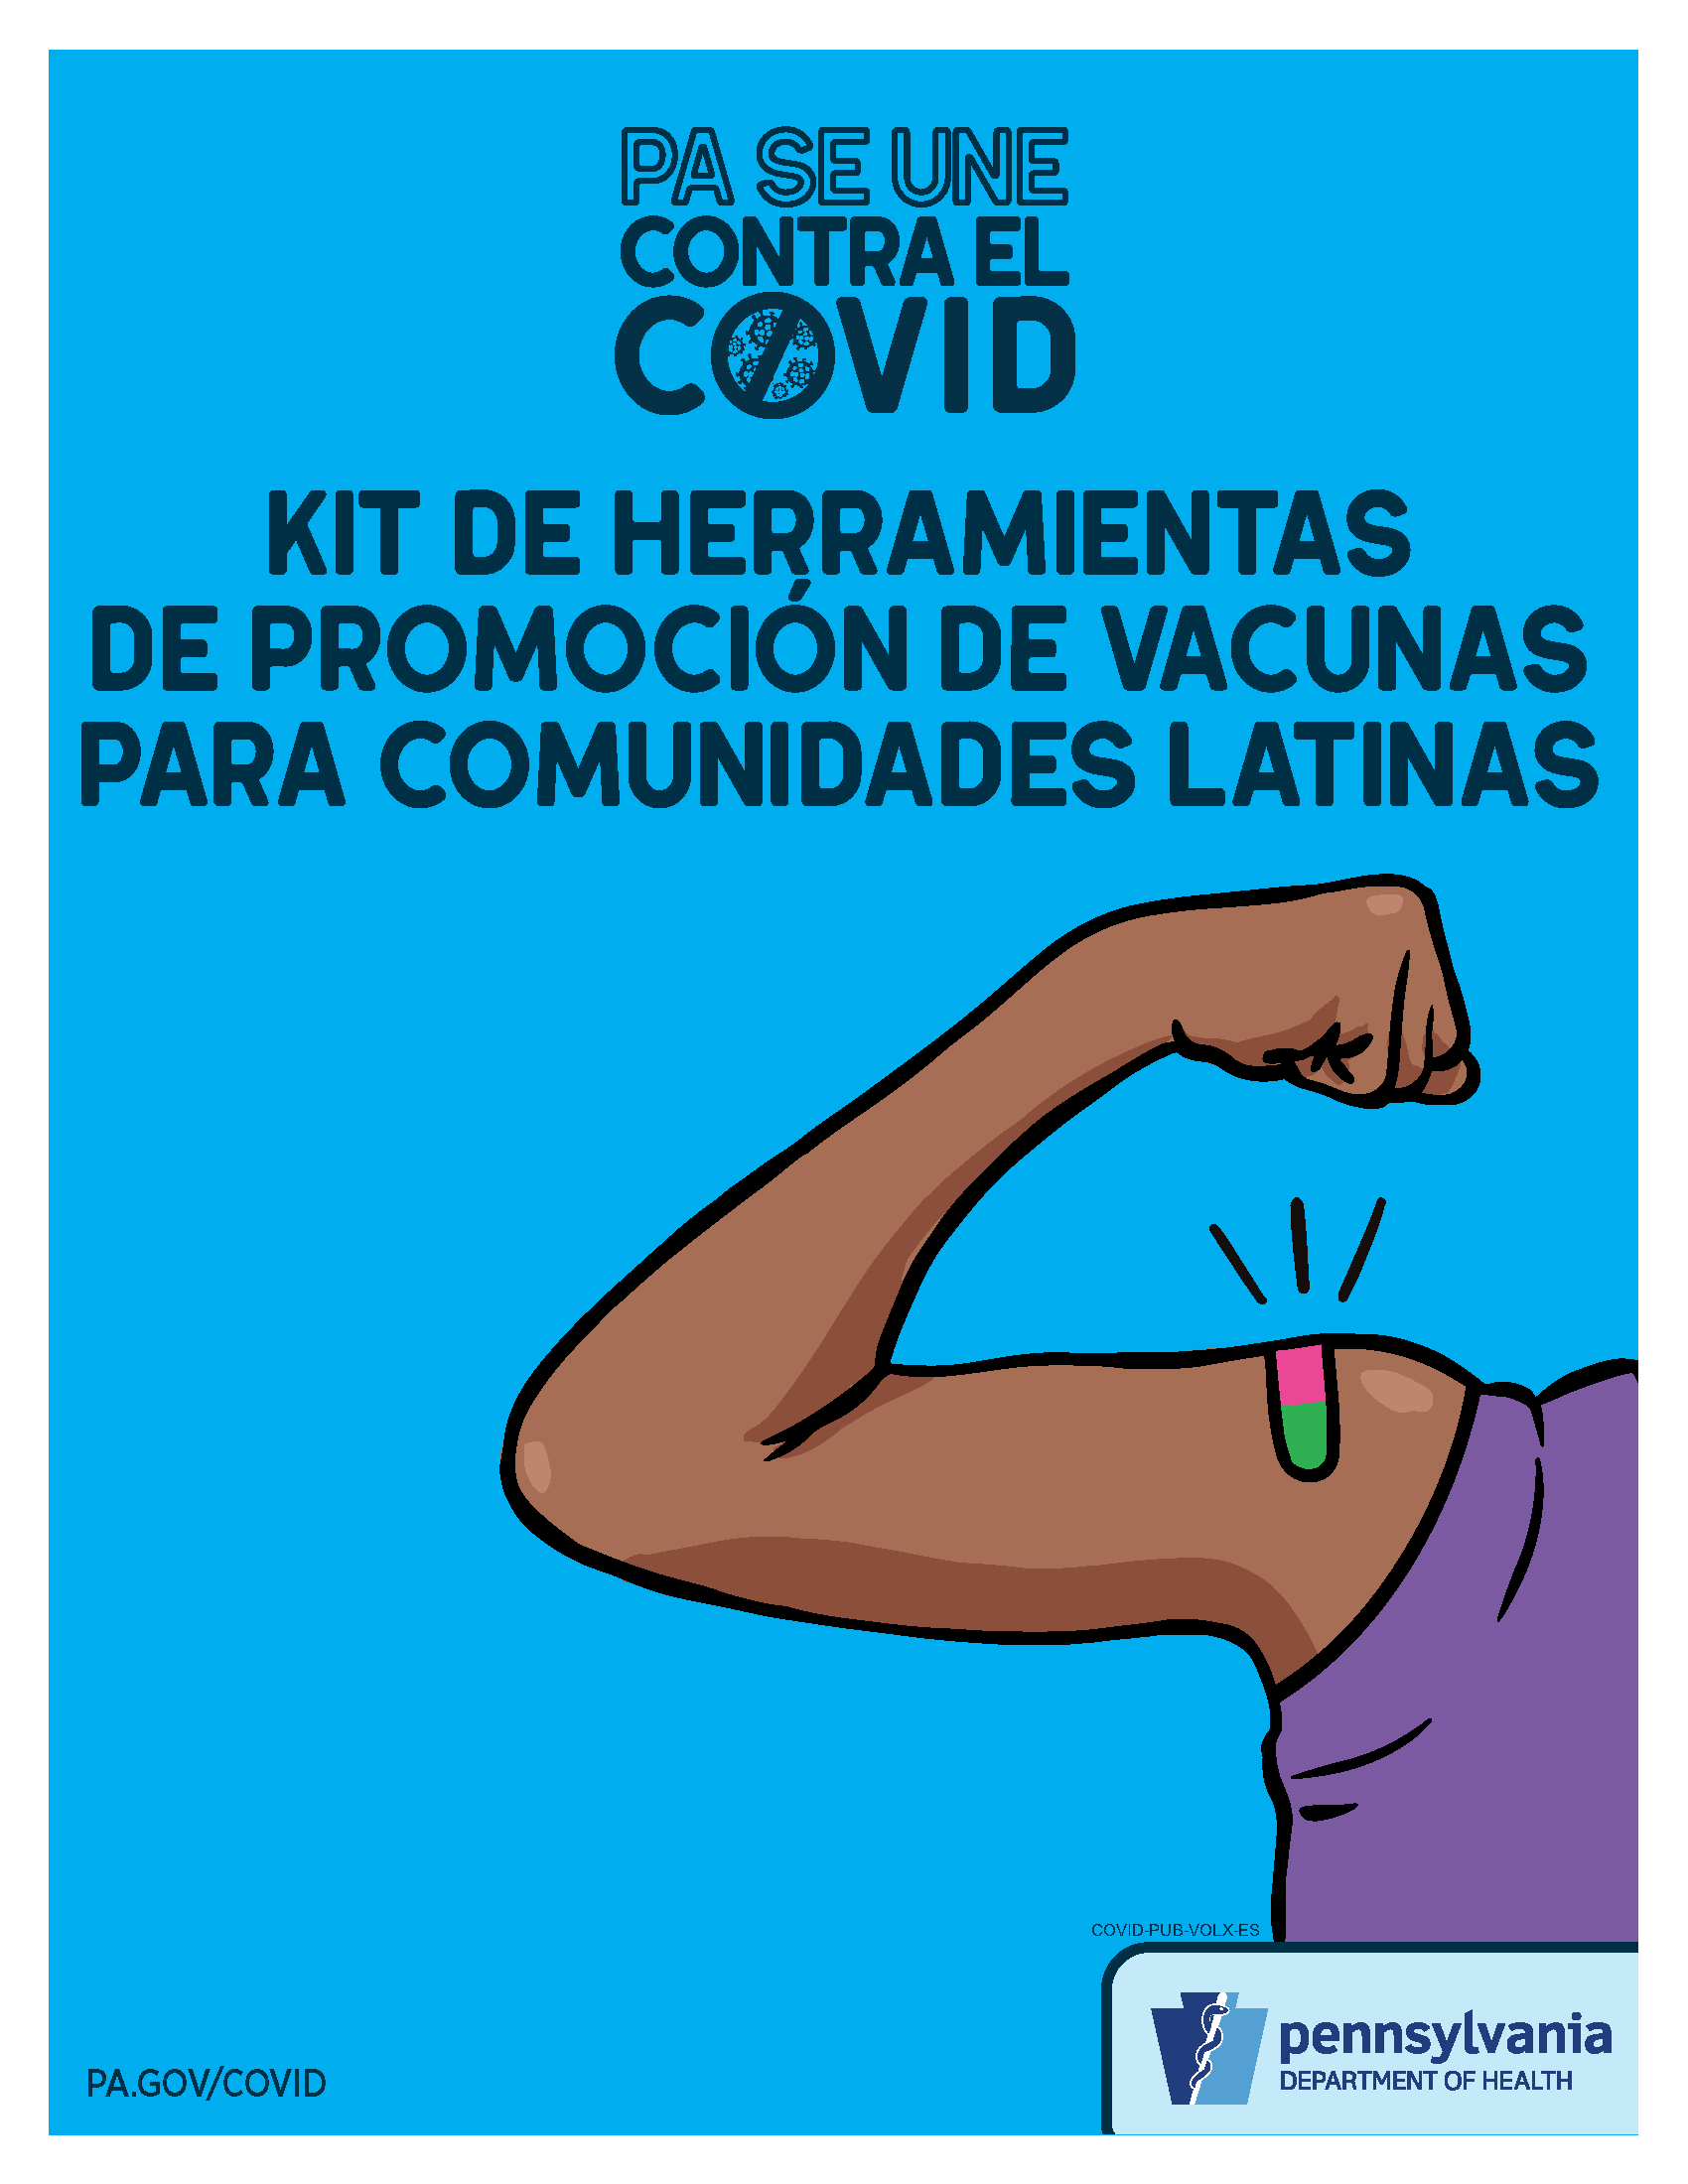 Vaccine Outreach Toolkit for Latinx Communities